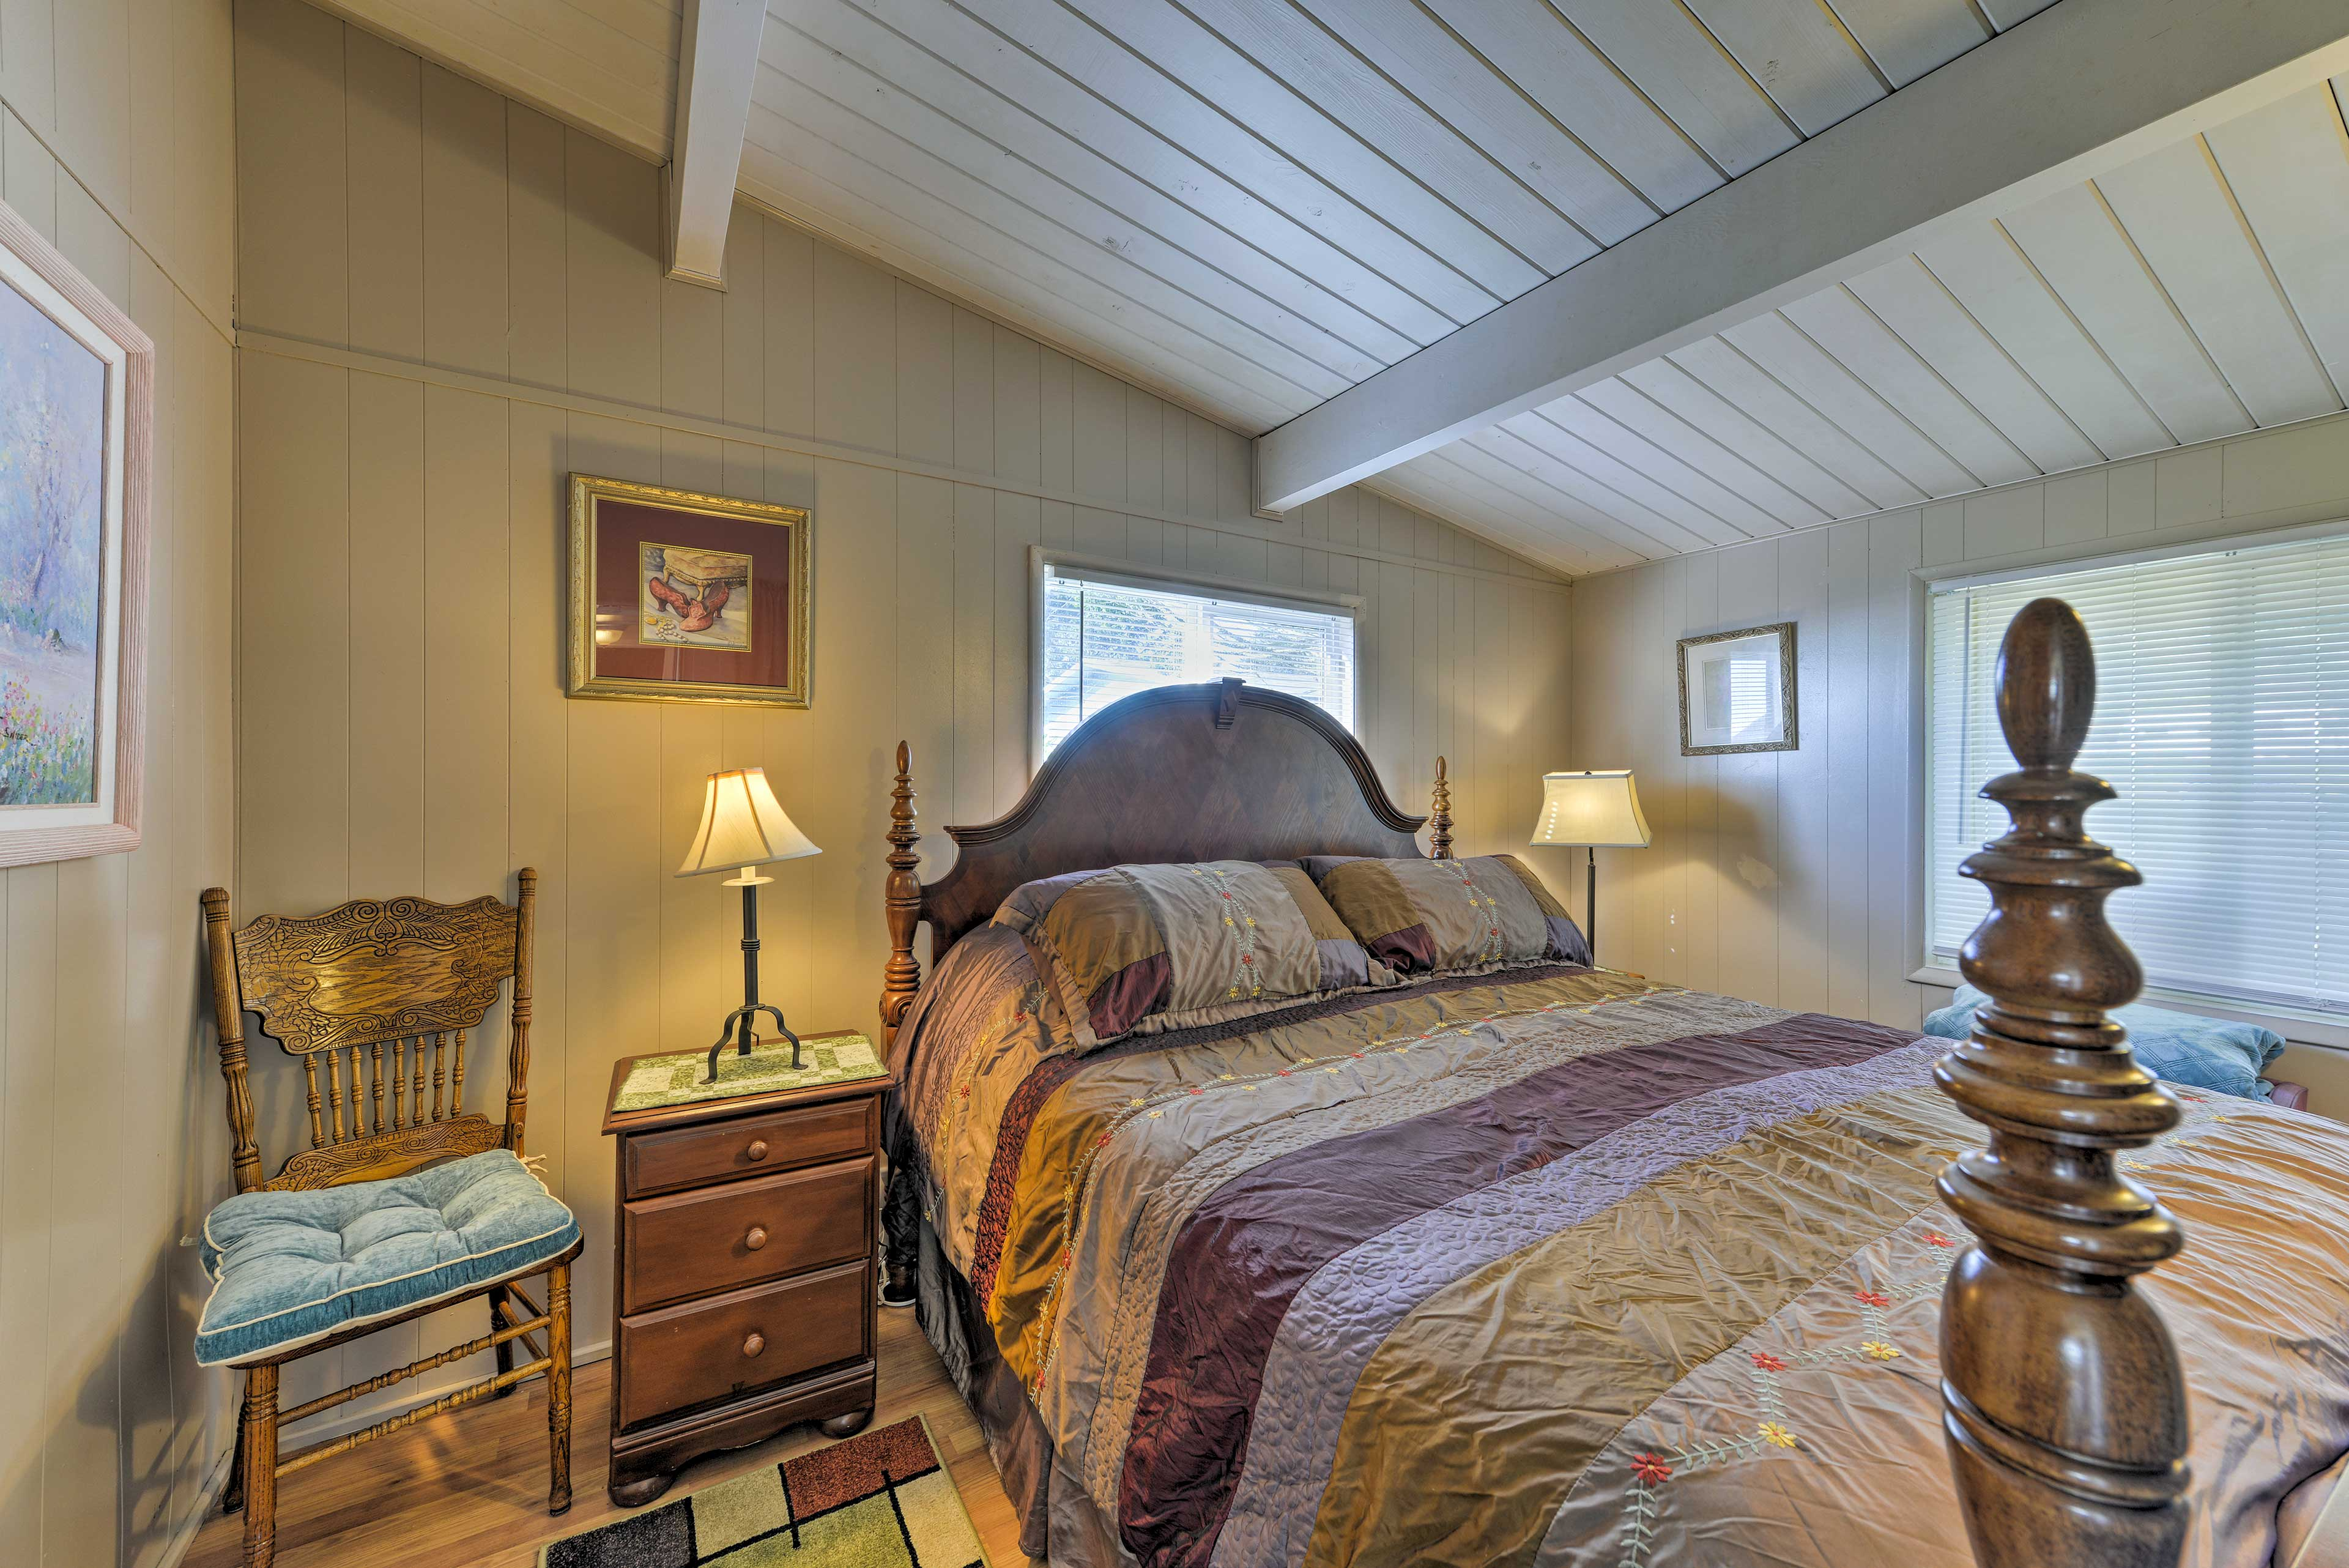 Two rooms host king-sized beds.